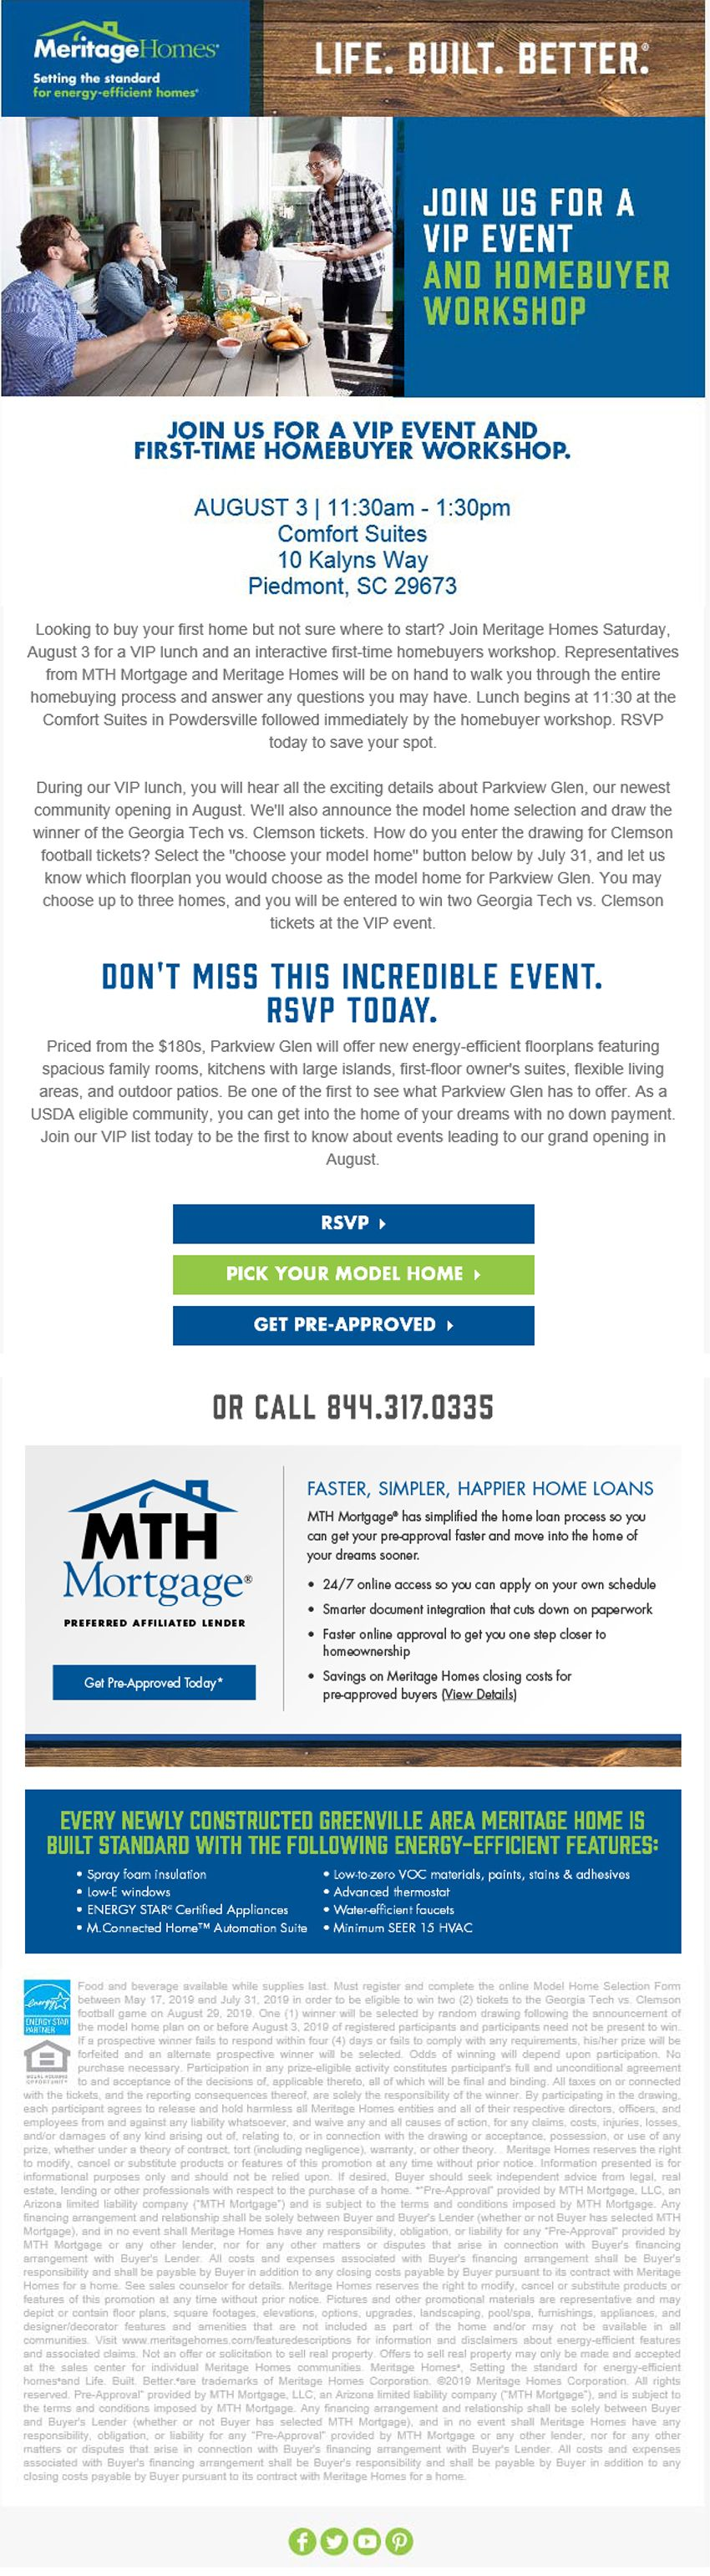 New Homes For Sale In Pelzer South Carolina Don T Miss Our Vip Event And First Time Homebuyer Workshop Aug New Homes For Sale Home Buying Parkview